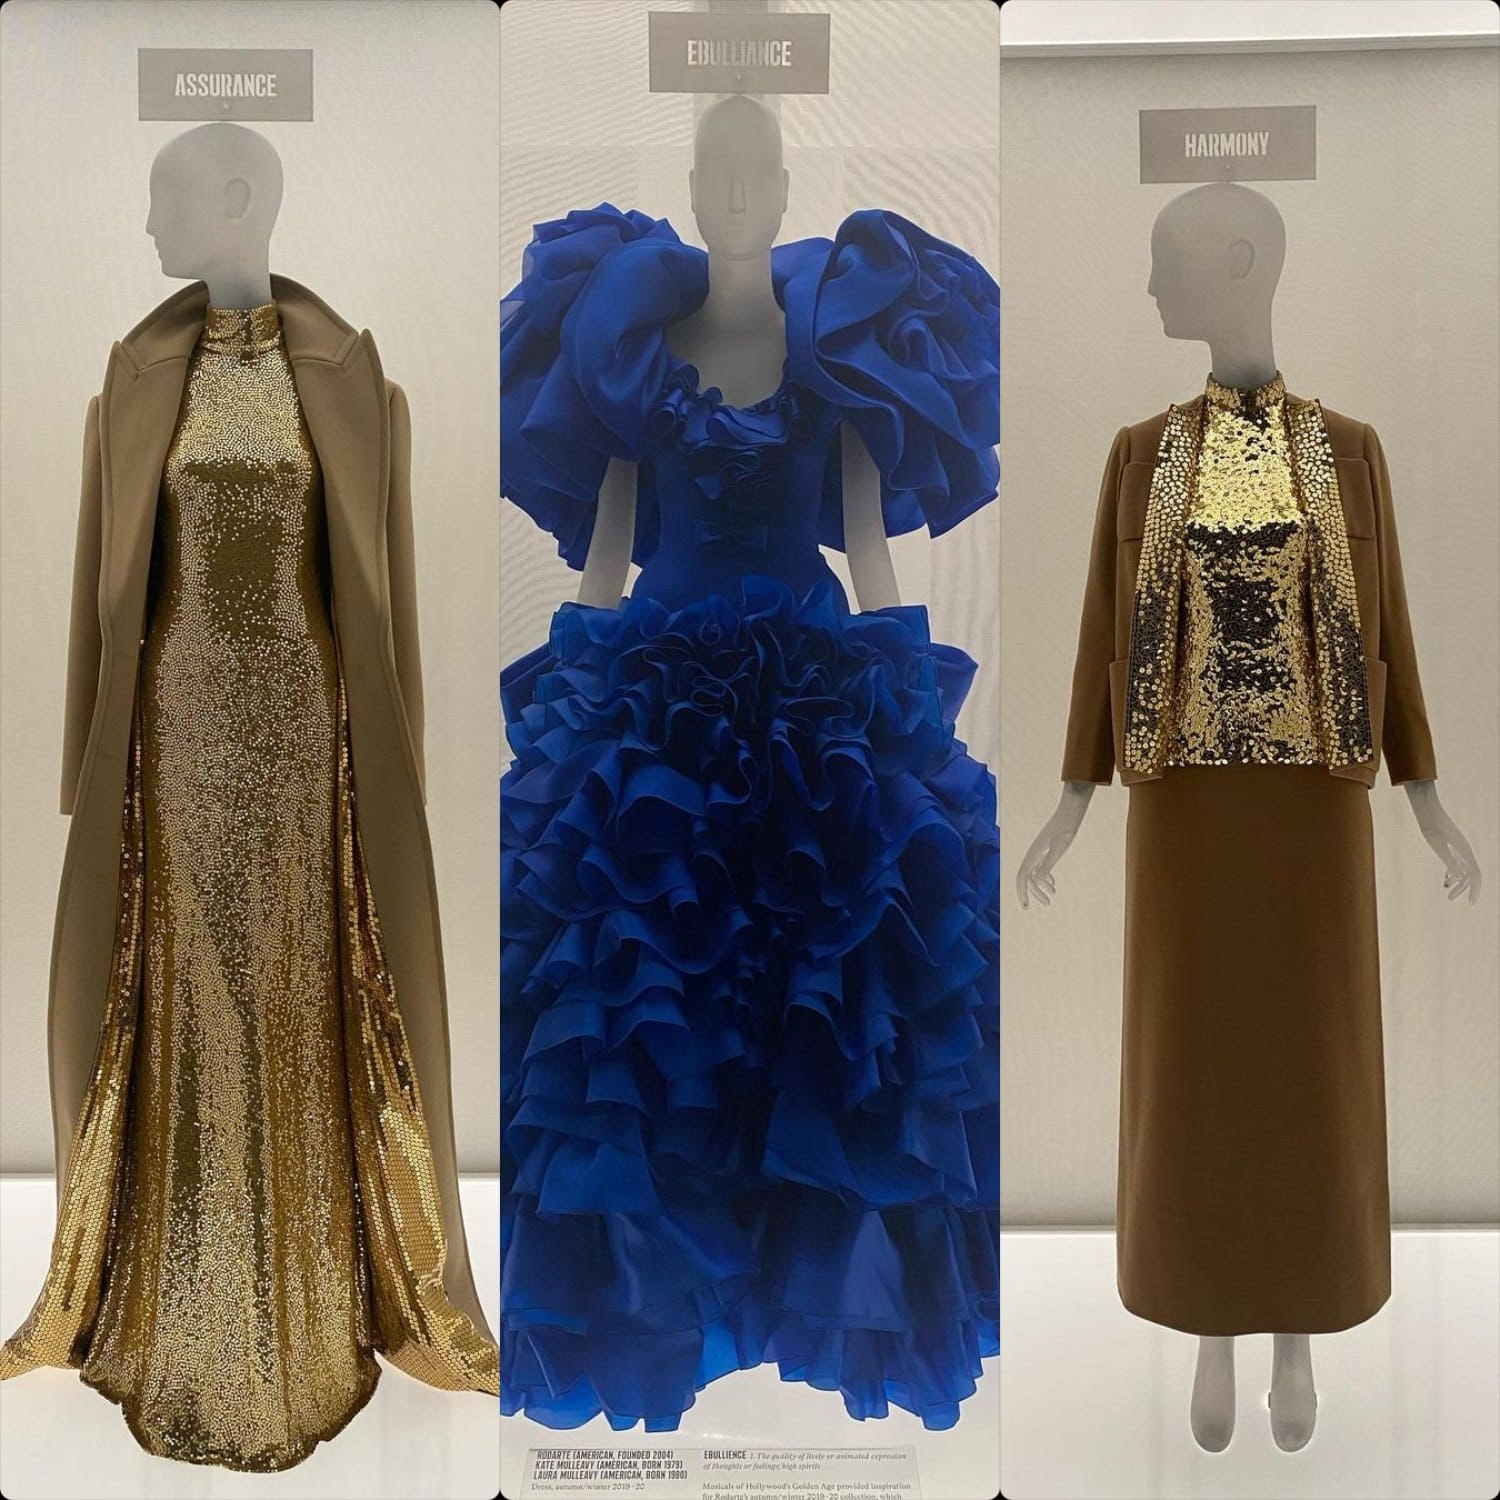 In America - A Lexicon of Fashion - exposition - Met Gala 2021 by RUNWAY MAGAZINE